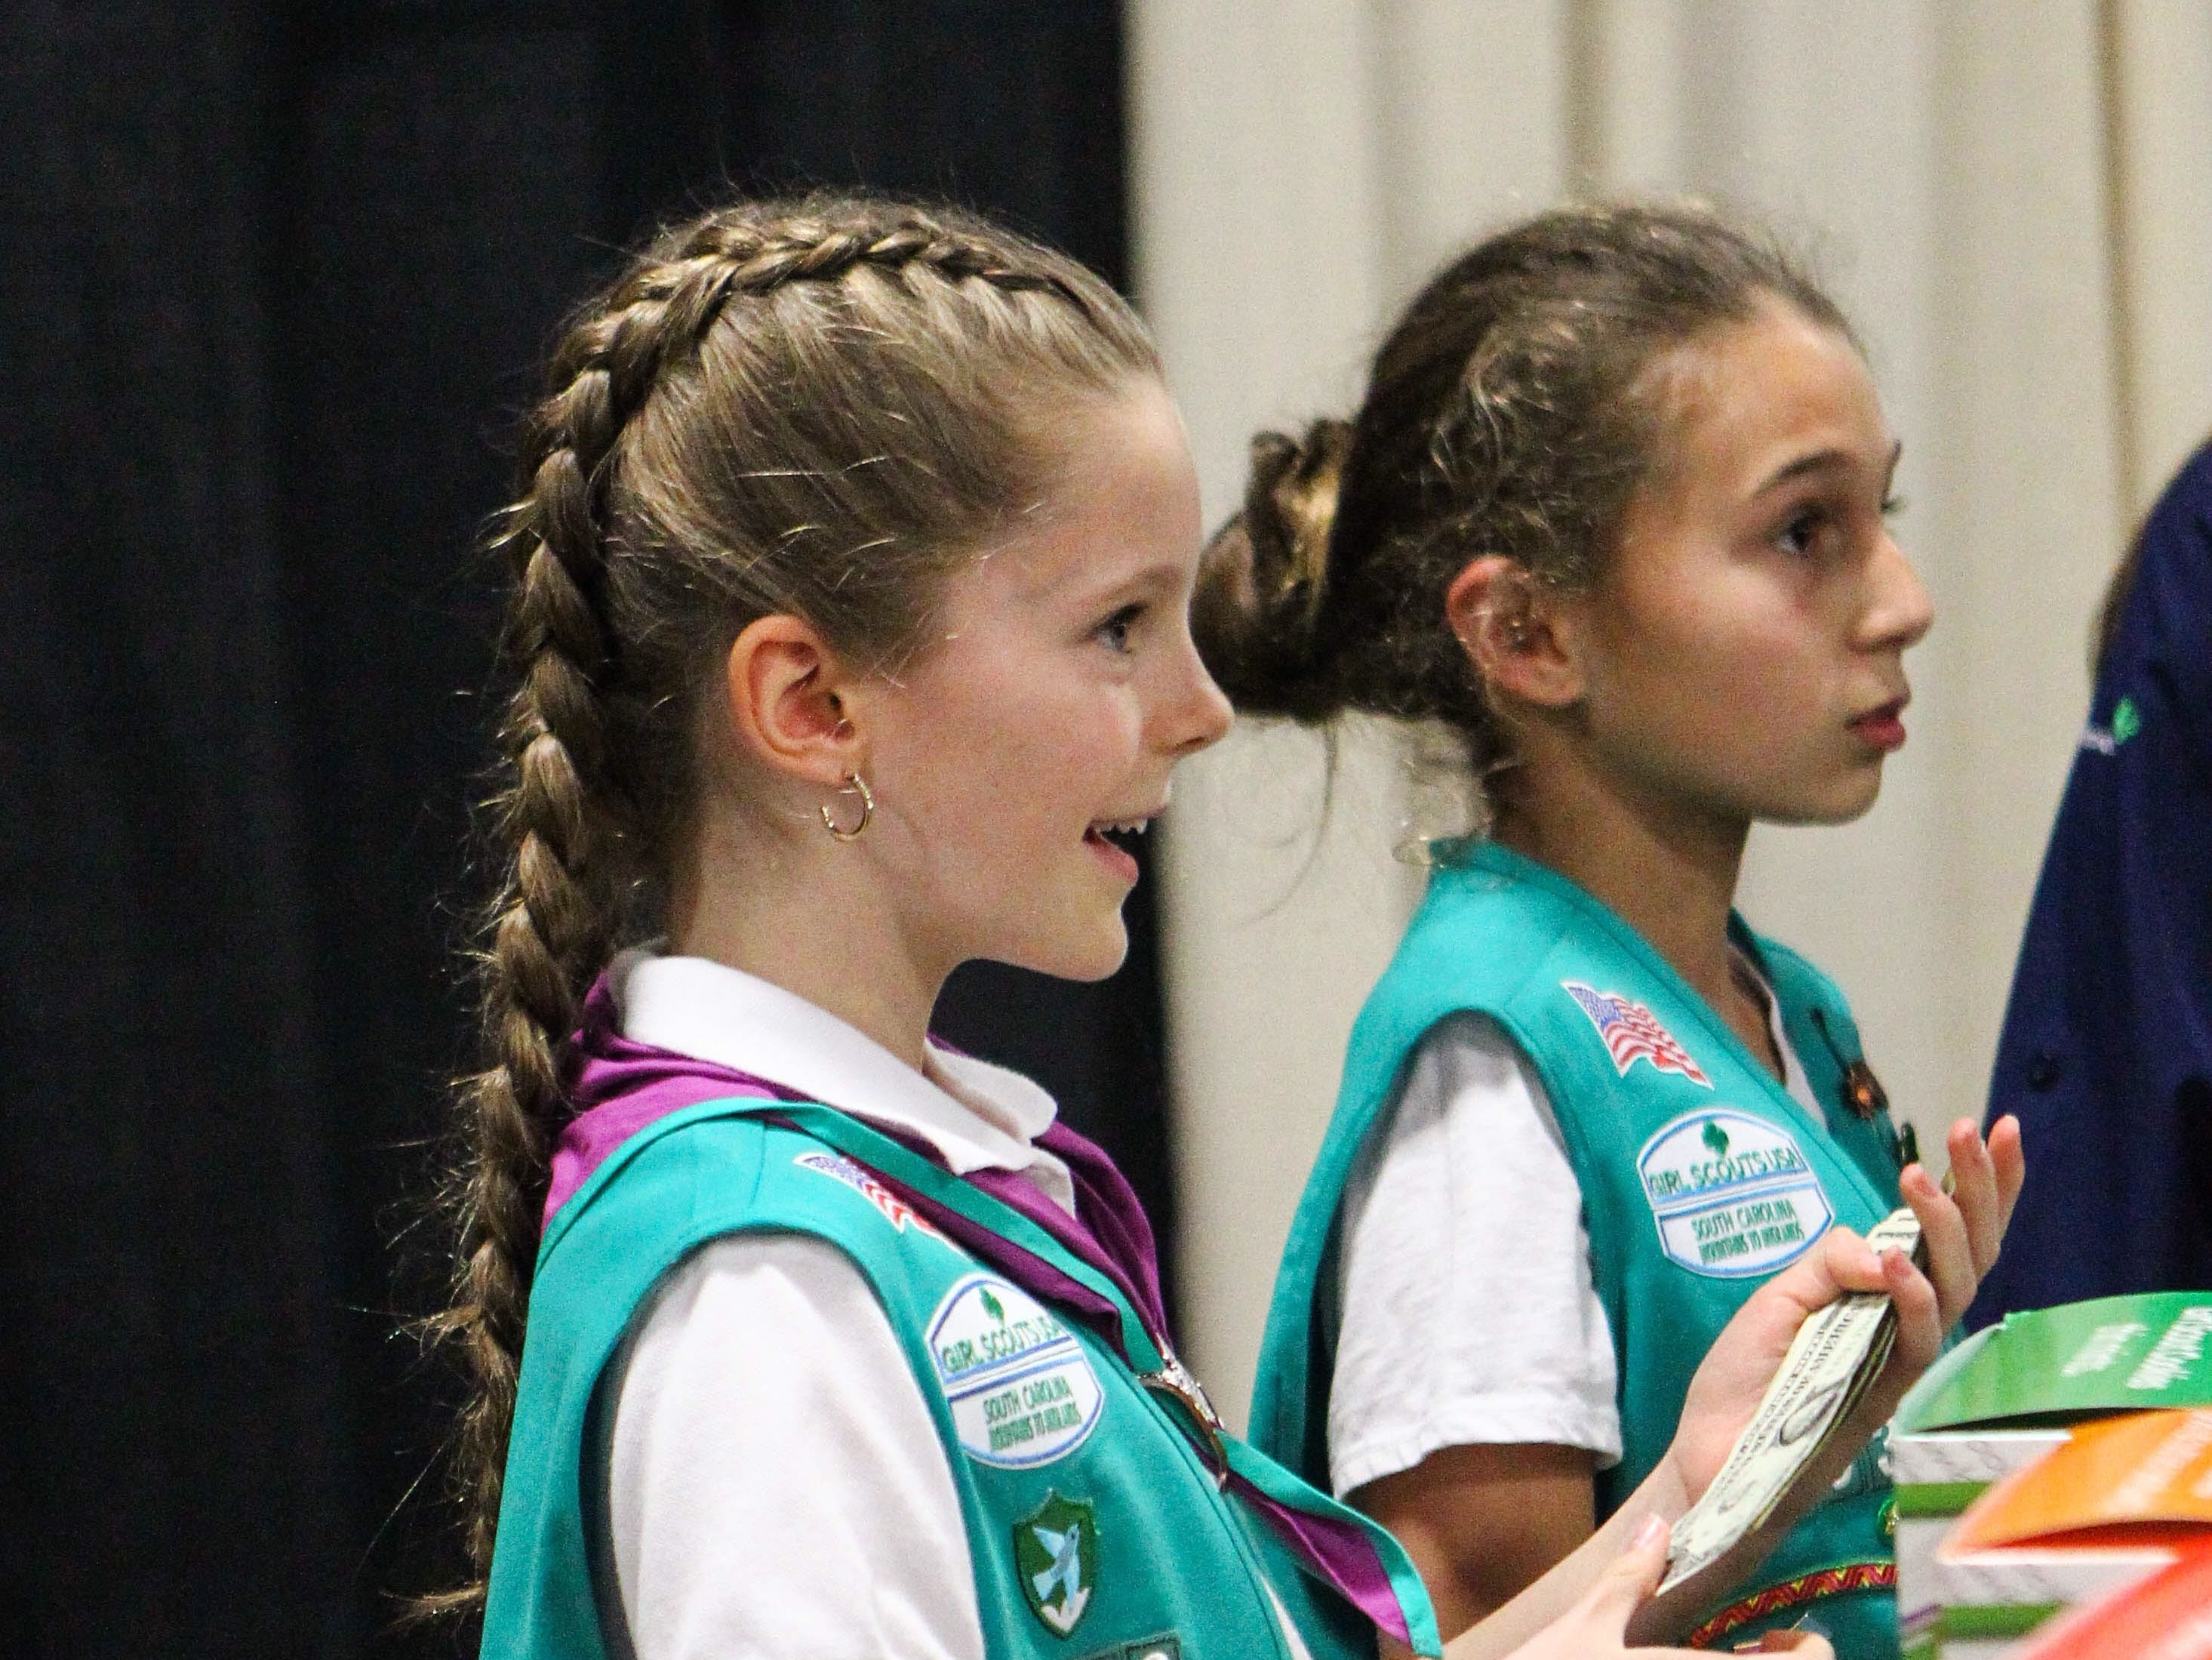 """Kelli Kivett, 10, and Leah Tysinger, 11, talk to customers at the Southern Home and Garden Show at the Greenville Convention Center on Friday, March 1, 2019. The Girl Scouts teach many life skills to young girls including """"financial literacy"""" Kelli's mother, Dee Kivett, said."""